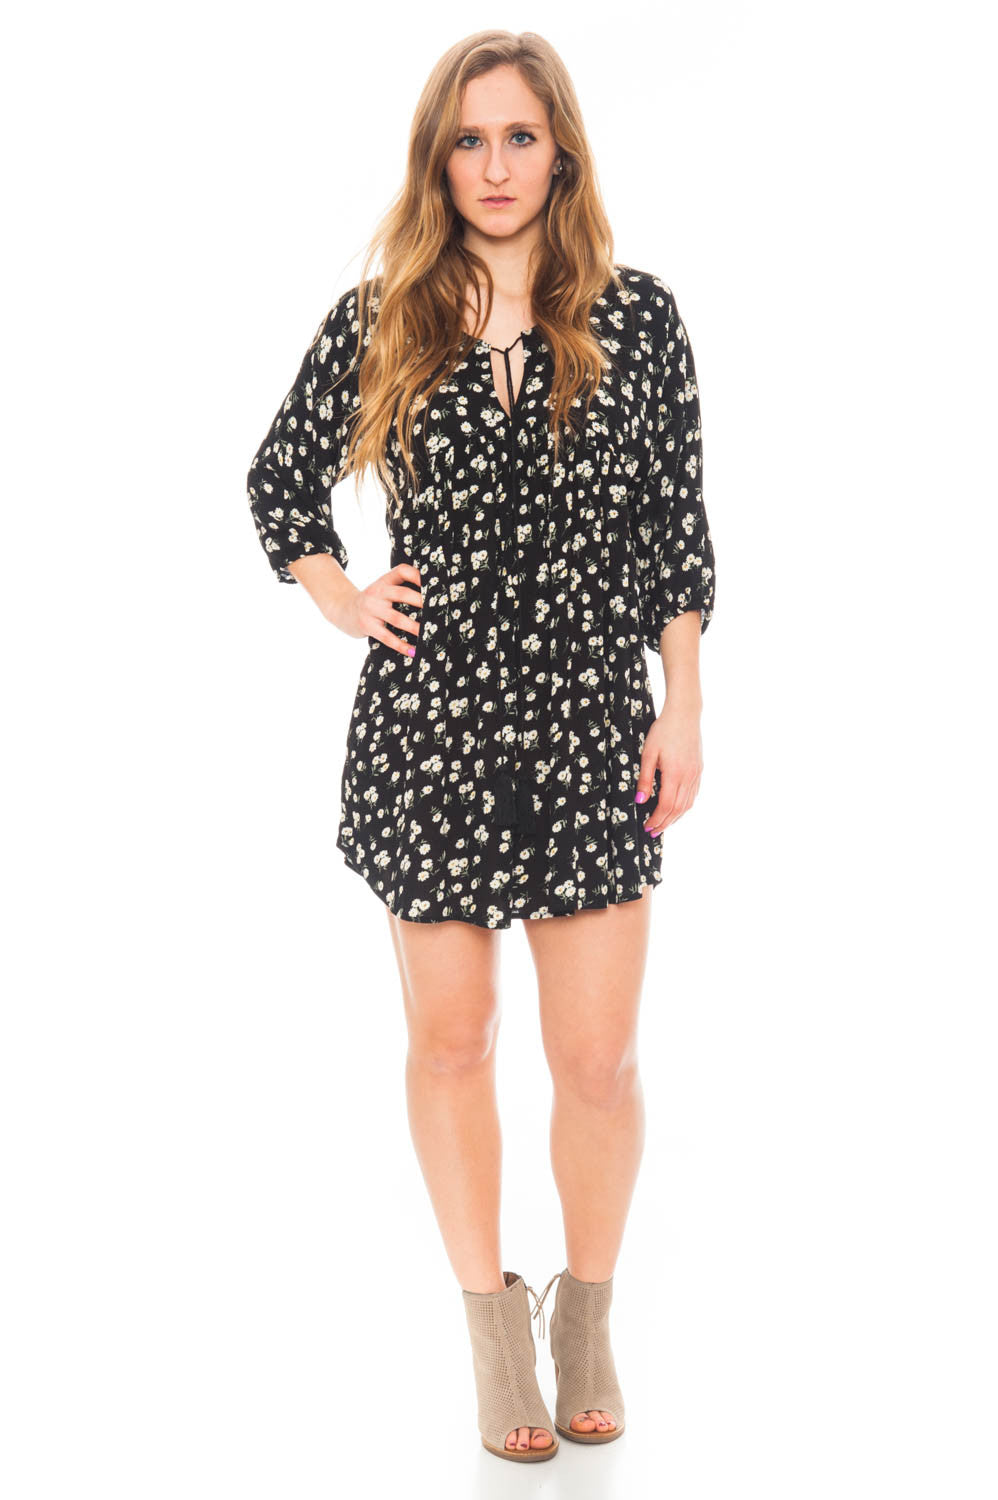 Dress - Boho Tie Front Dress with Puffed Sleeves